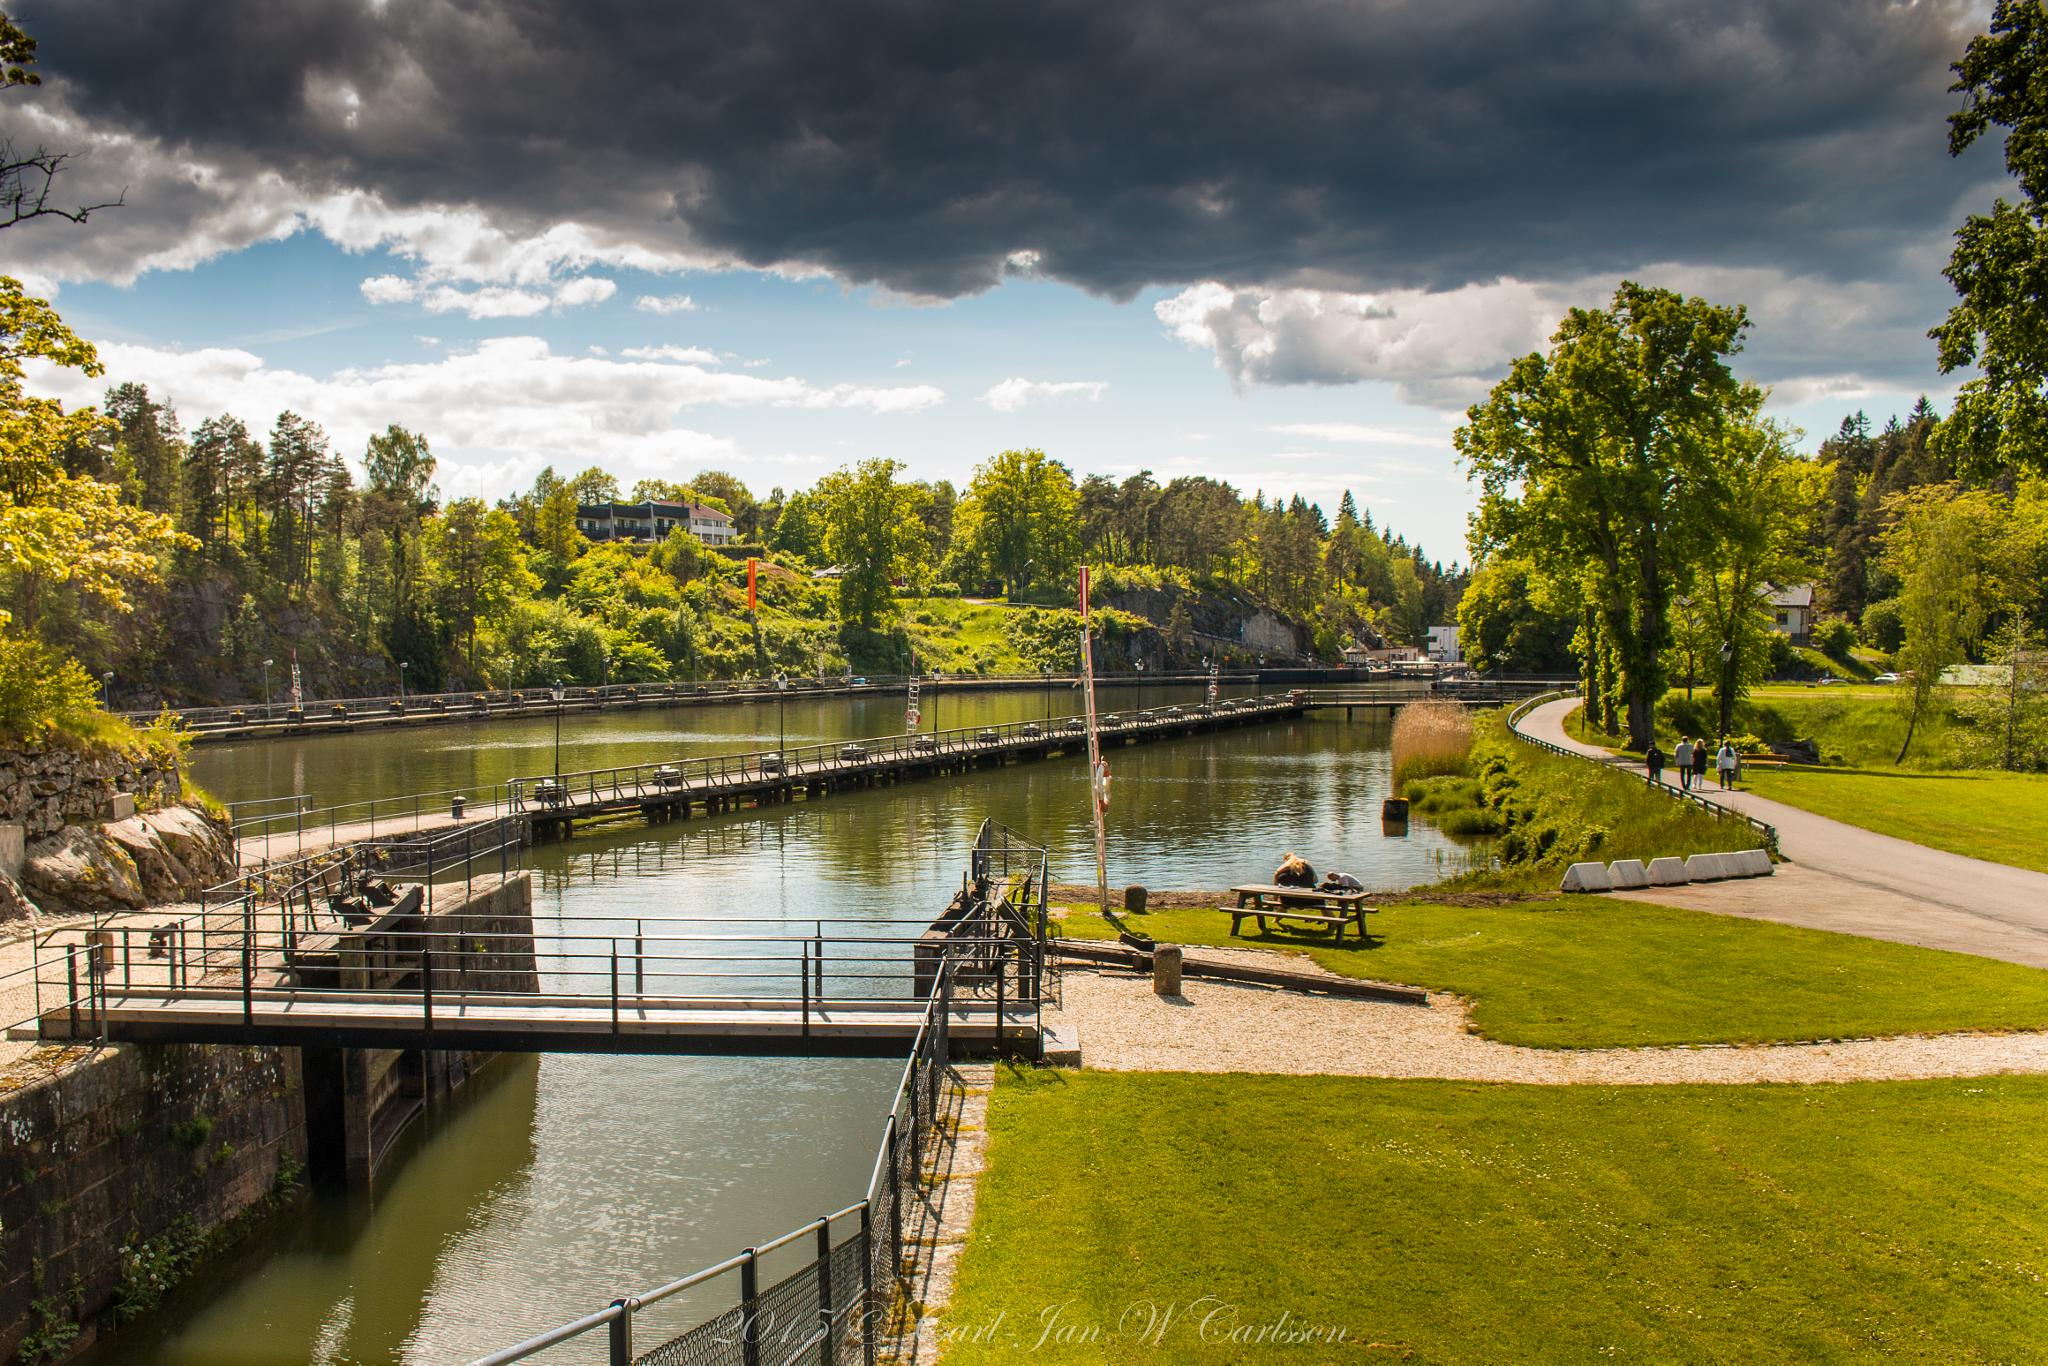 Summer Evening at the Gota Canal 3 by carljan w carlsson